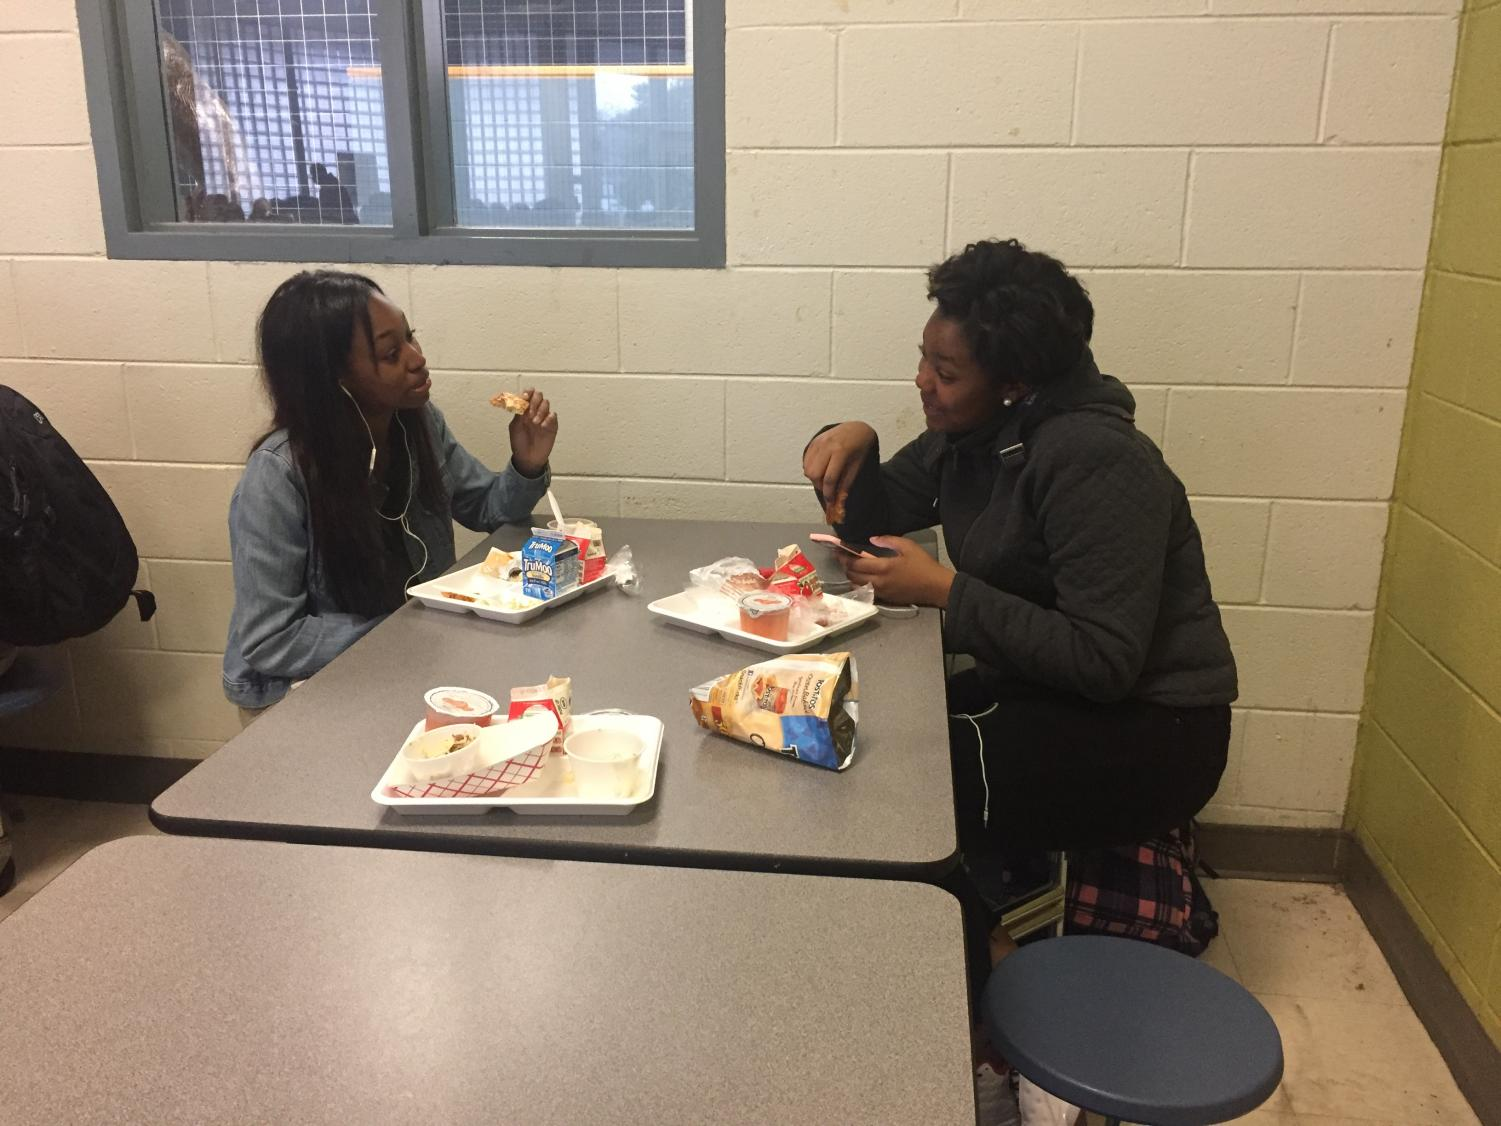 Eating nutritional lunches bought at school, Millbrook student Cayla Finch enjoys her break from classes. During the long holiday breaks and weekends there is no other way for students to get meals provided by the school.